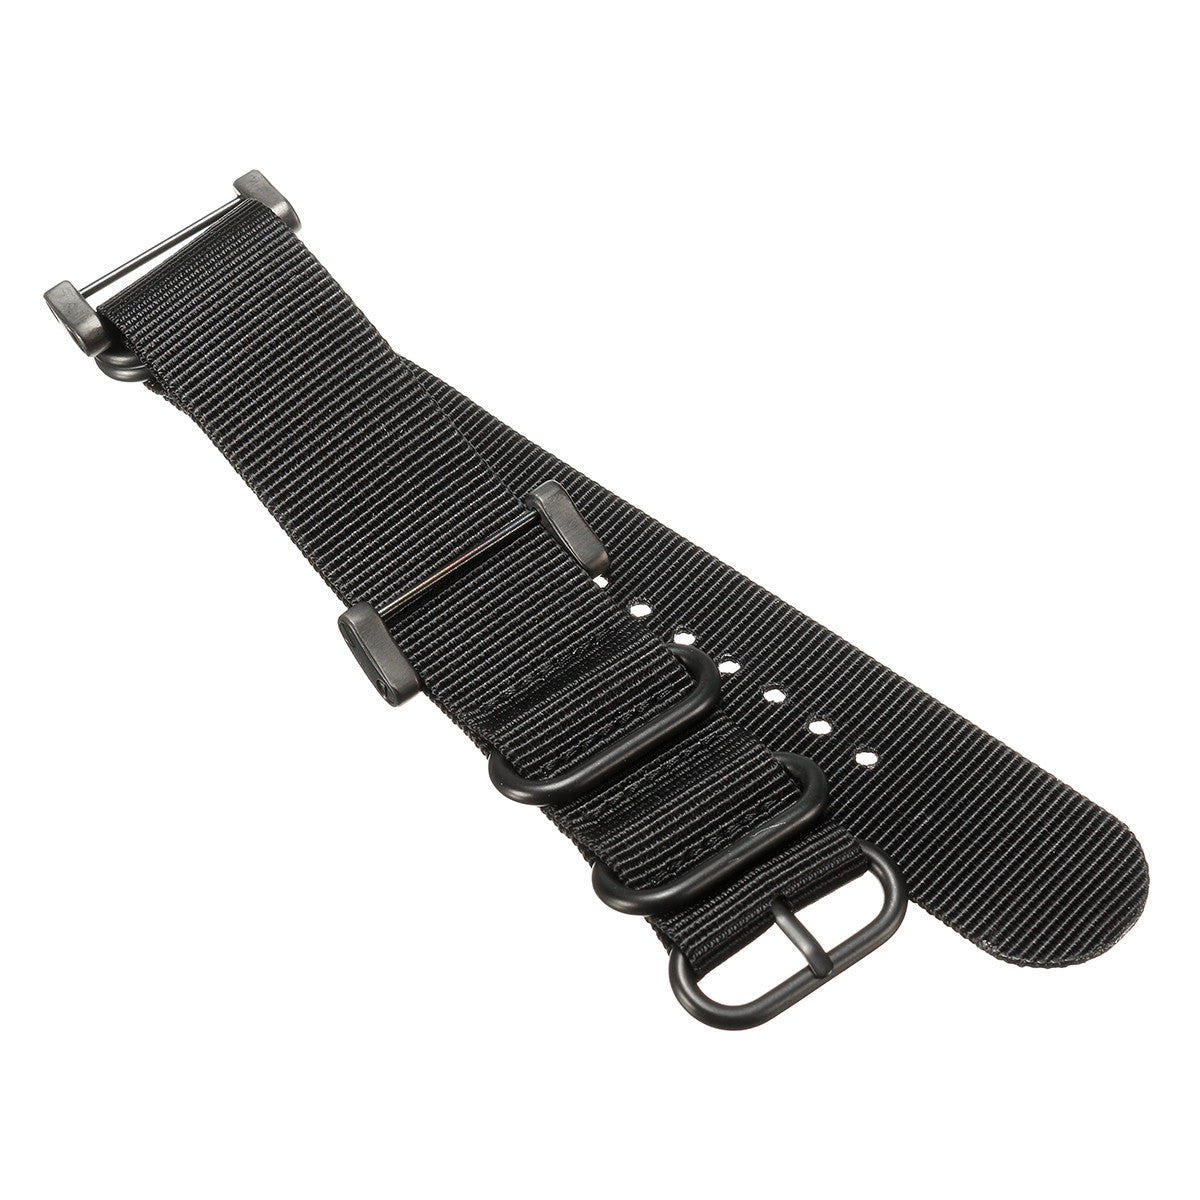 Suunto Climbing Watch Band Wristband Black 5-Ring Lugs Adapter For Suunto Core